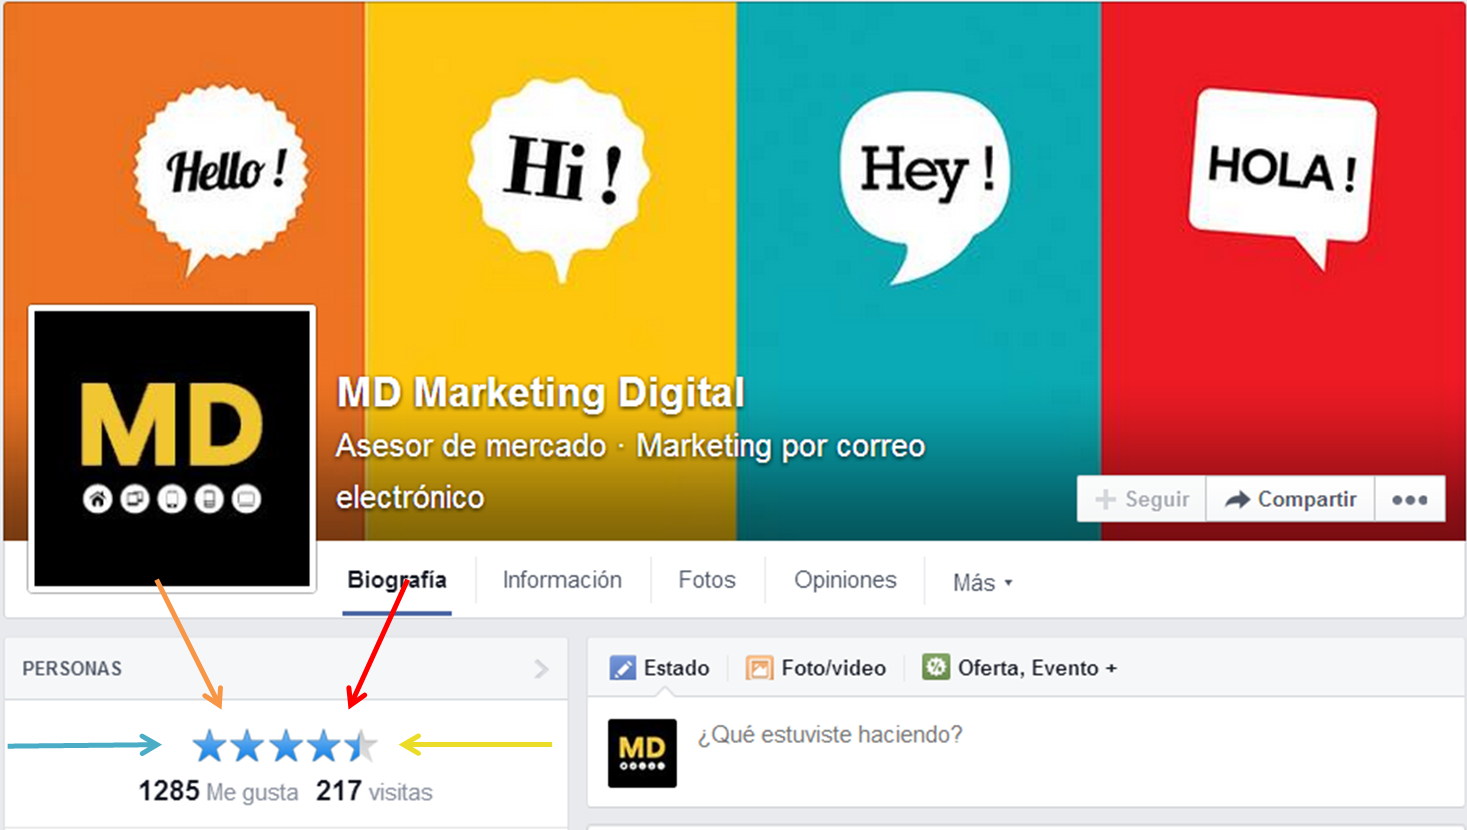 MD Blog Reseñas de Facebook: ¿Qué son, para qué sirven y cómo las coloco? Primeros Pasos Social Media  marketing online Facebook estrategia Digital - Social Media